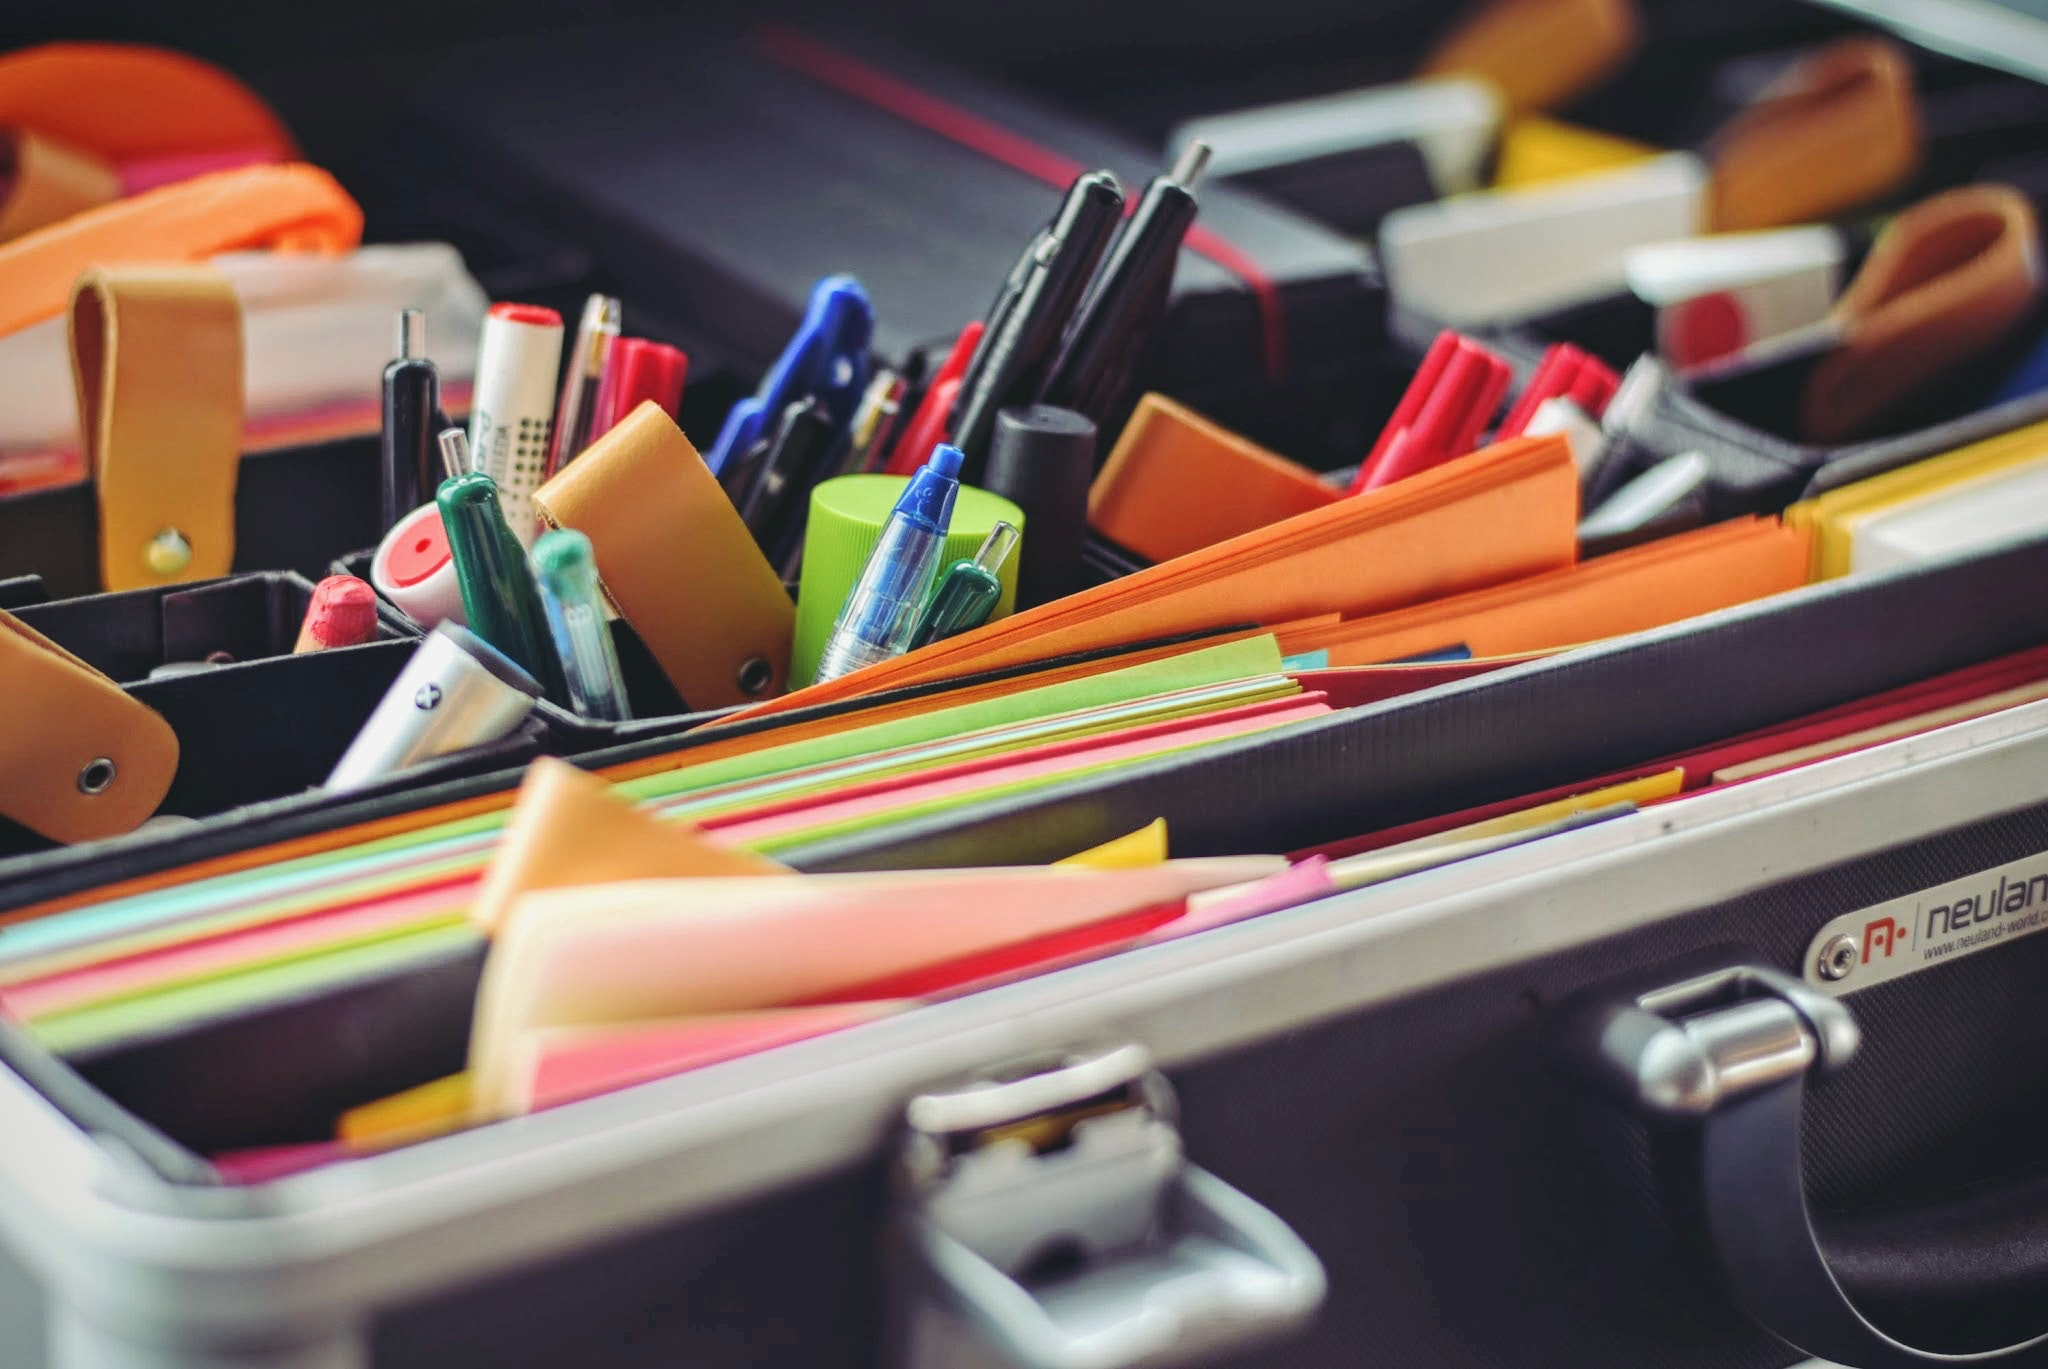 Photo of various office supplies, pens, coloured paper, scissors in green, black and orange